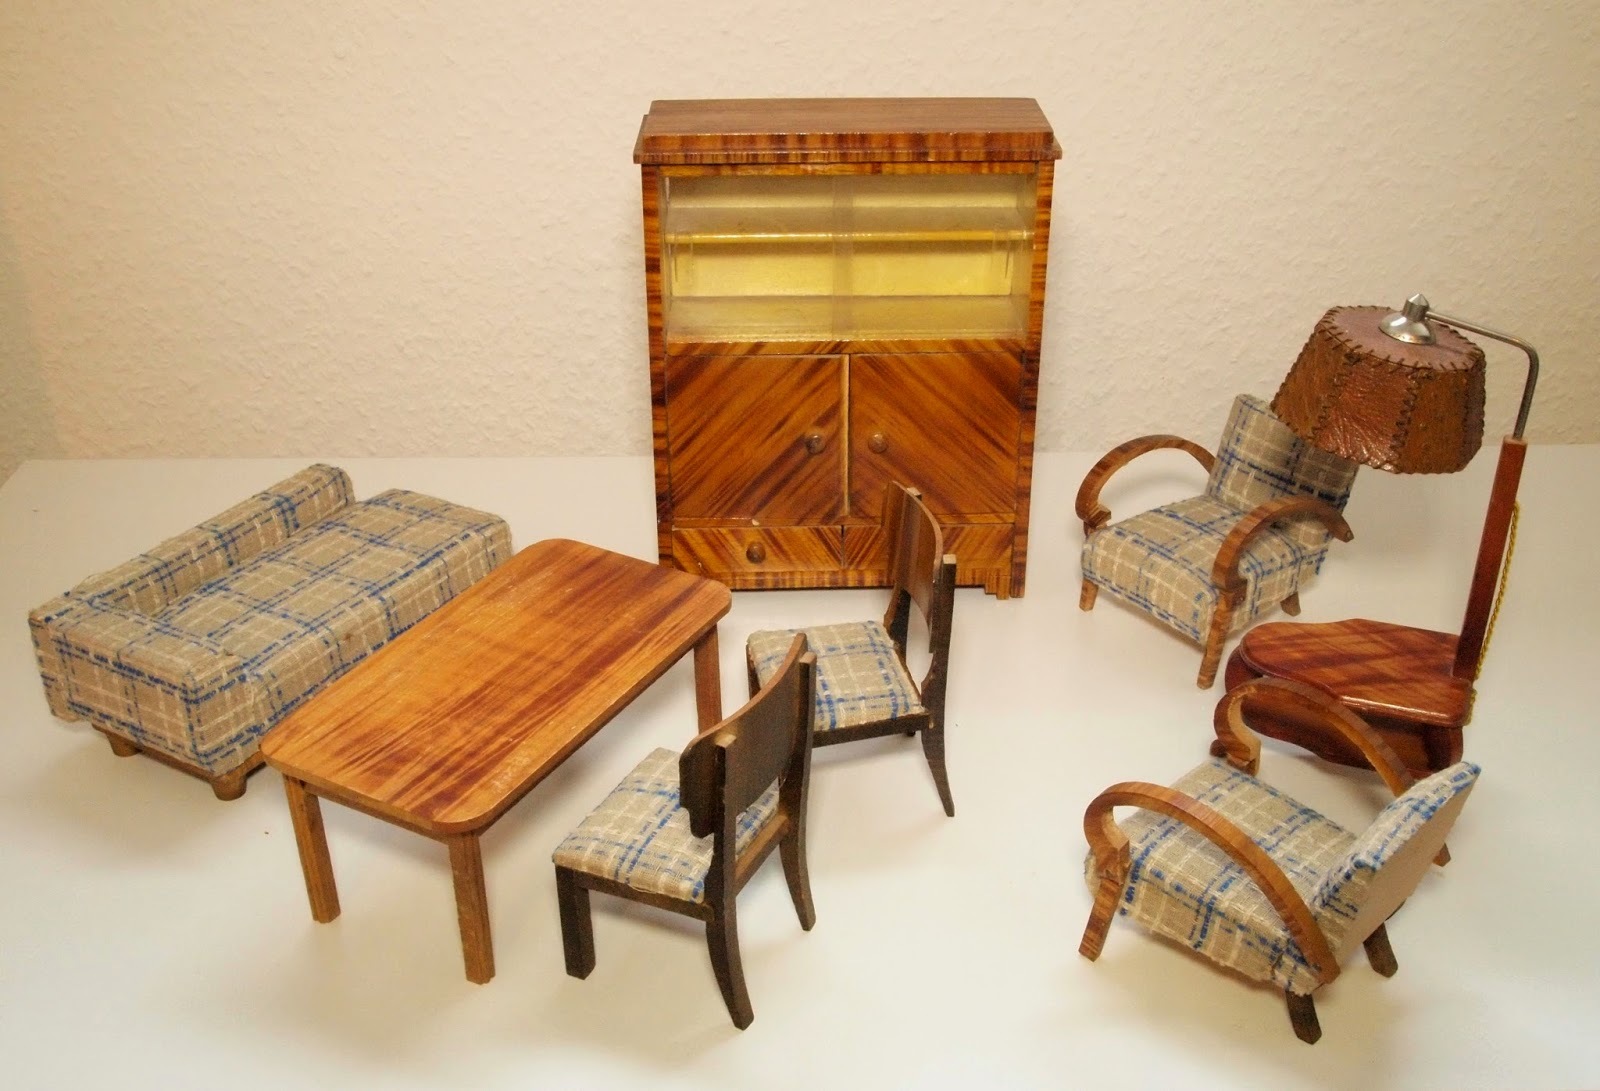 Set of wooden veneered living room furniture with lamp